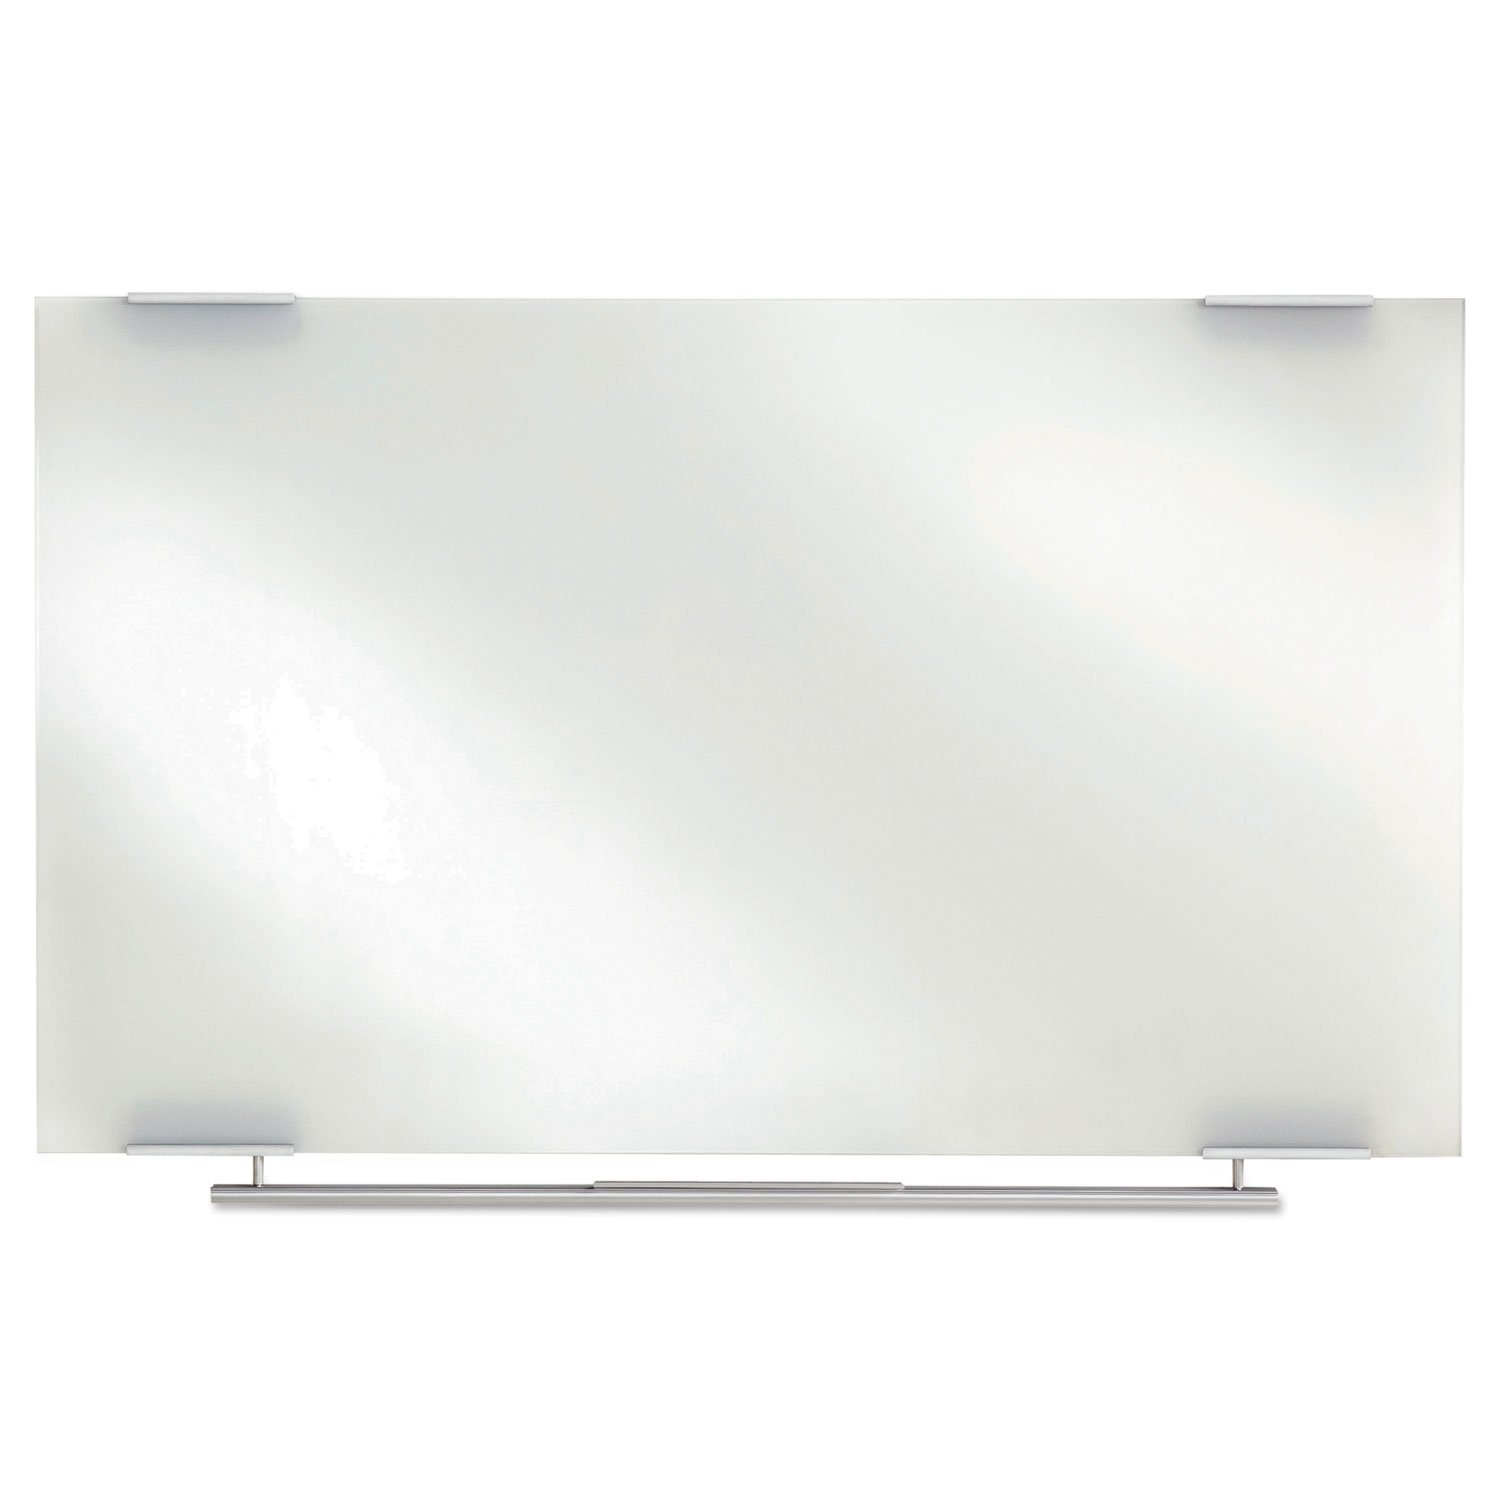 Iceberg 31160 Clarity Glass Dry Erase Boards, Frameless, 72 x 36 by MyDirectAdvantage